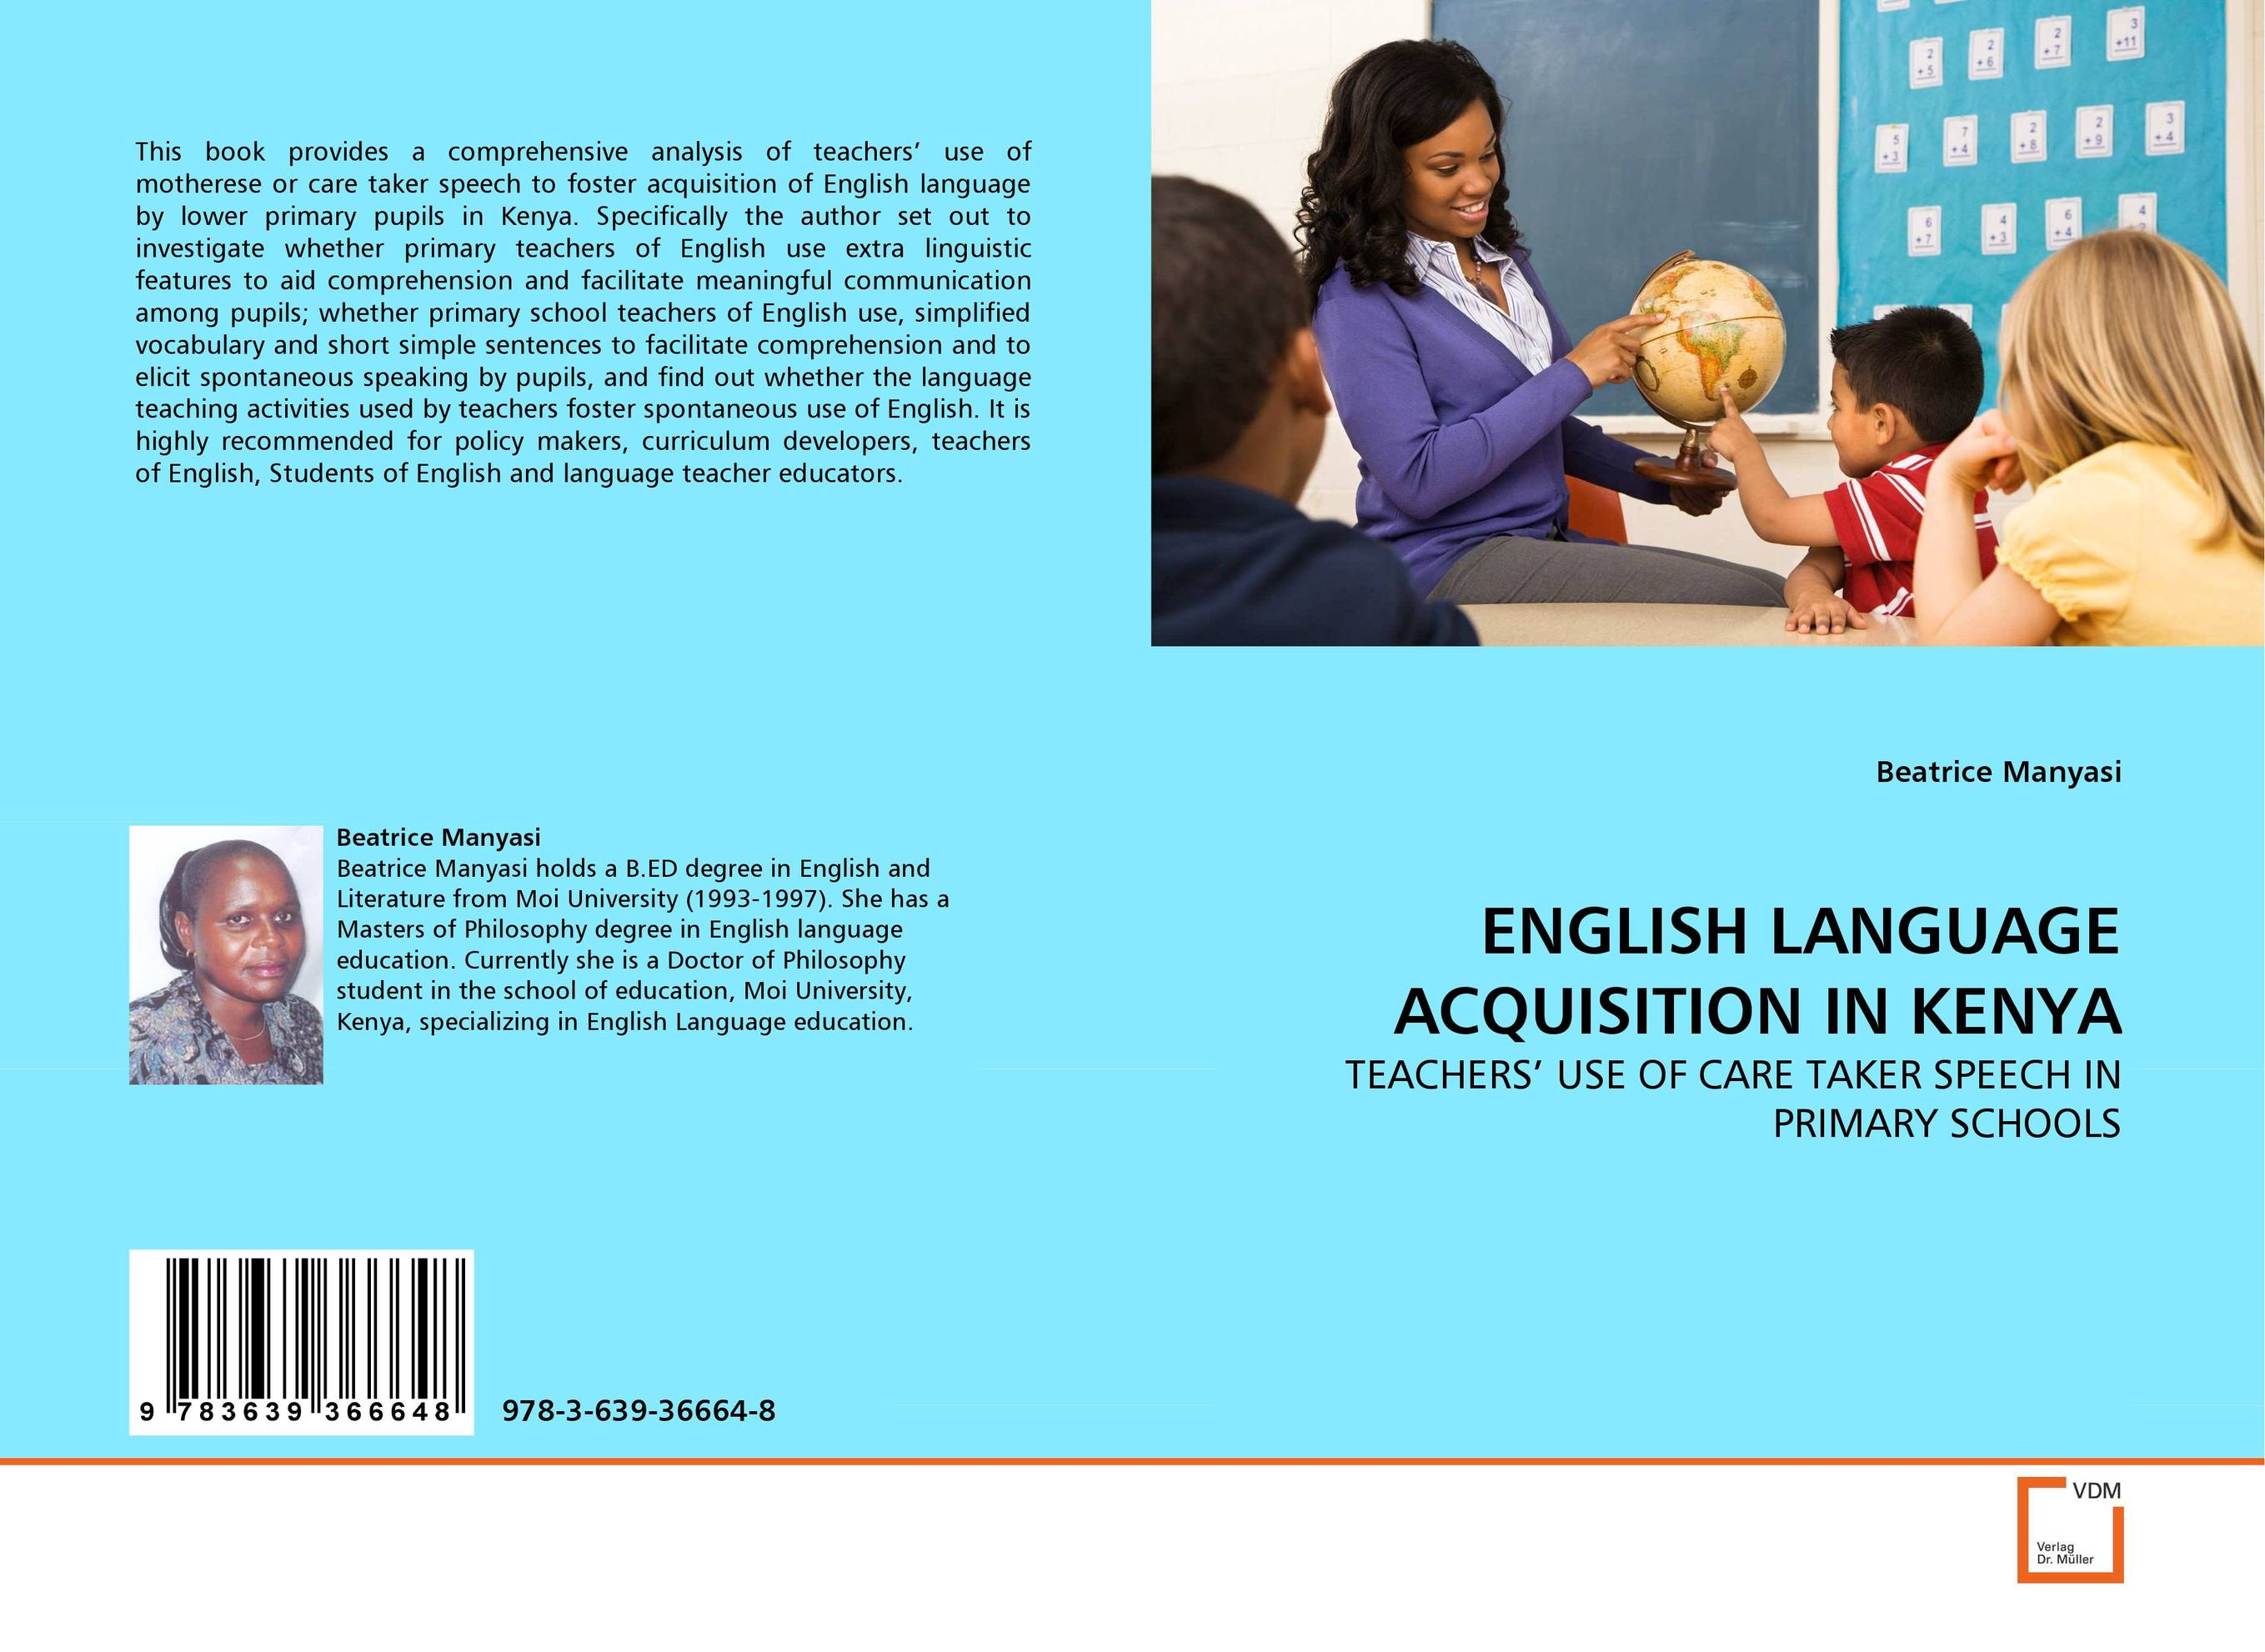 ENGLISH LANGUAGE ACQUISITION IN KENYA zoltan dornyei the psychology of second language acquisition